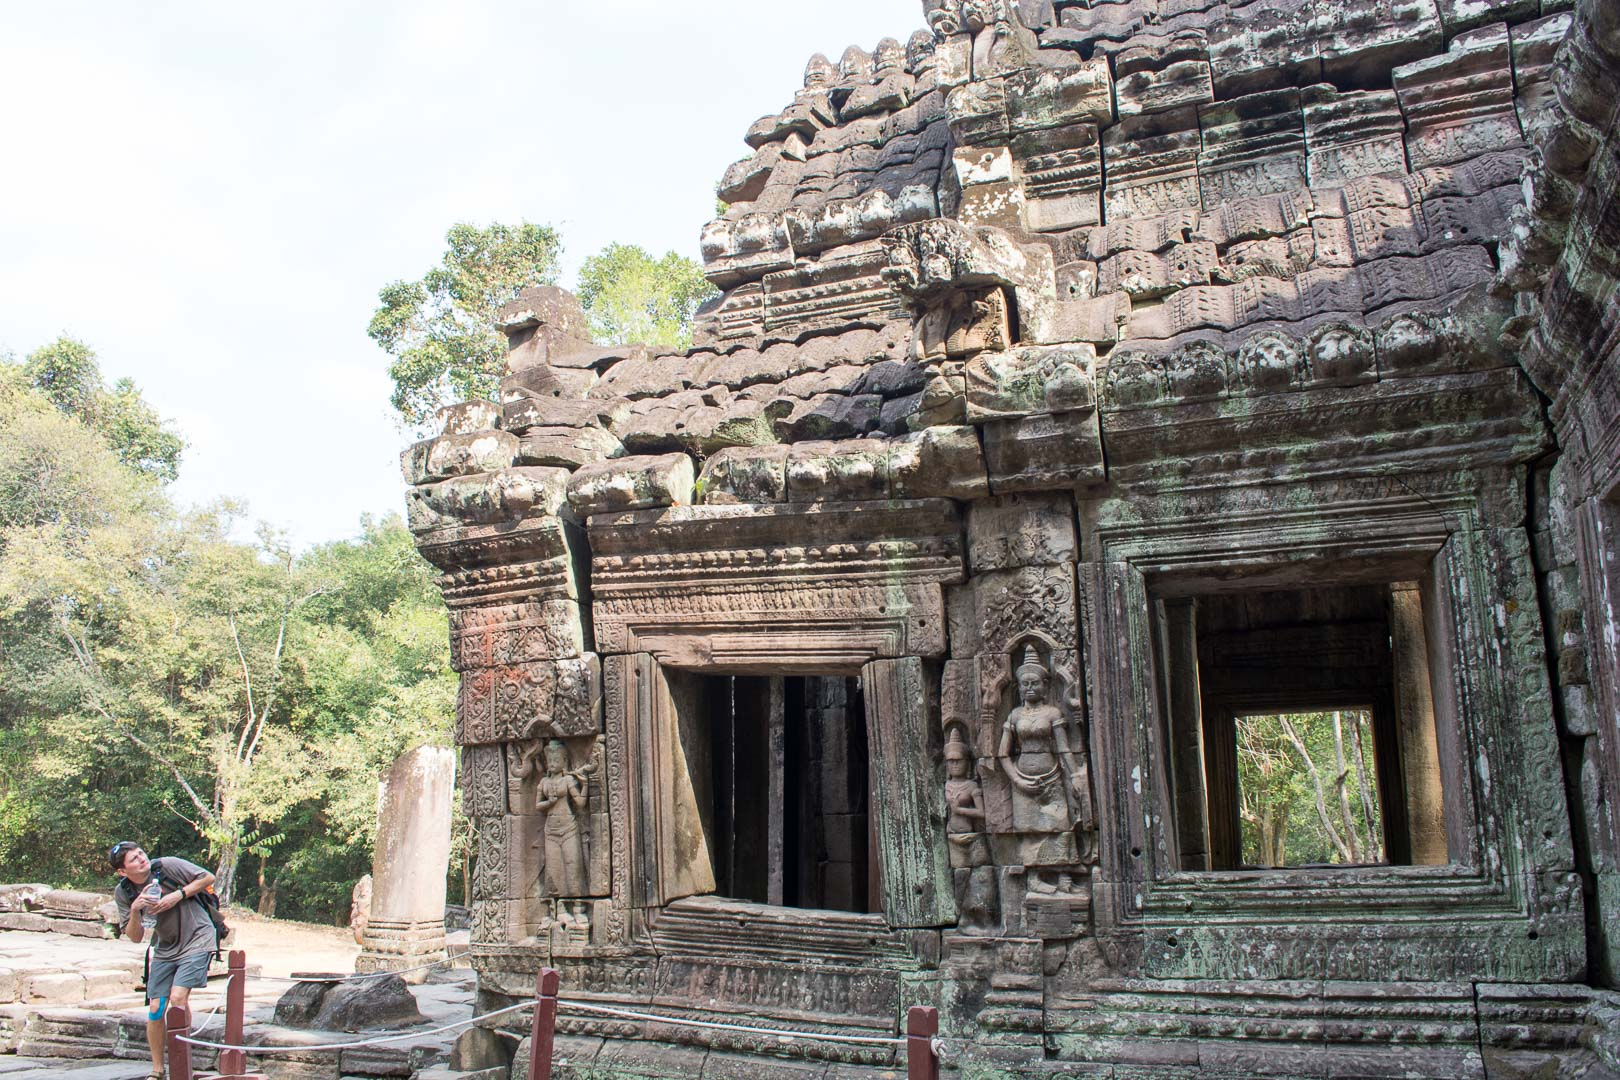 Banteay Kdei Please Don't Fall on Meee